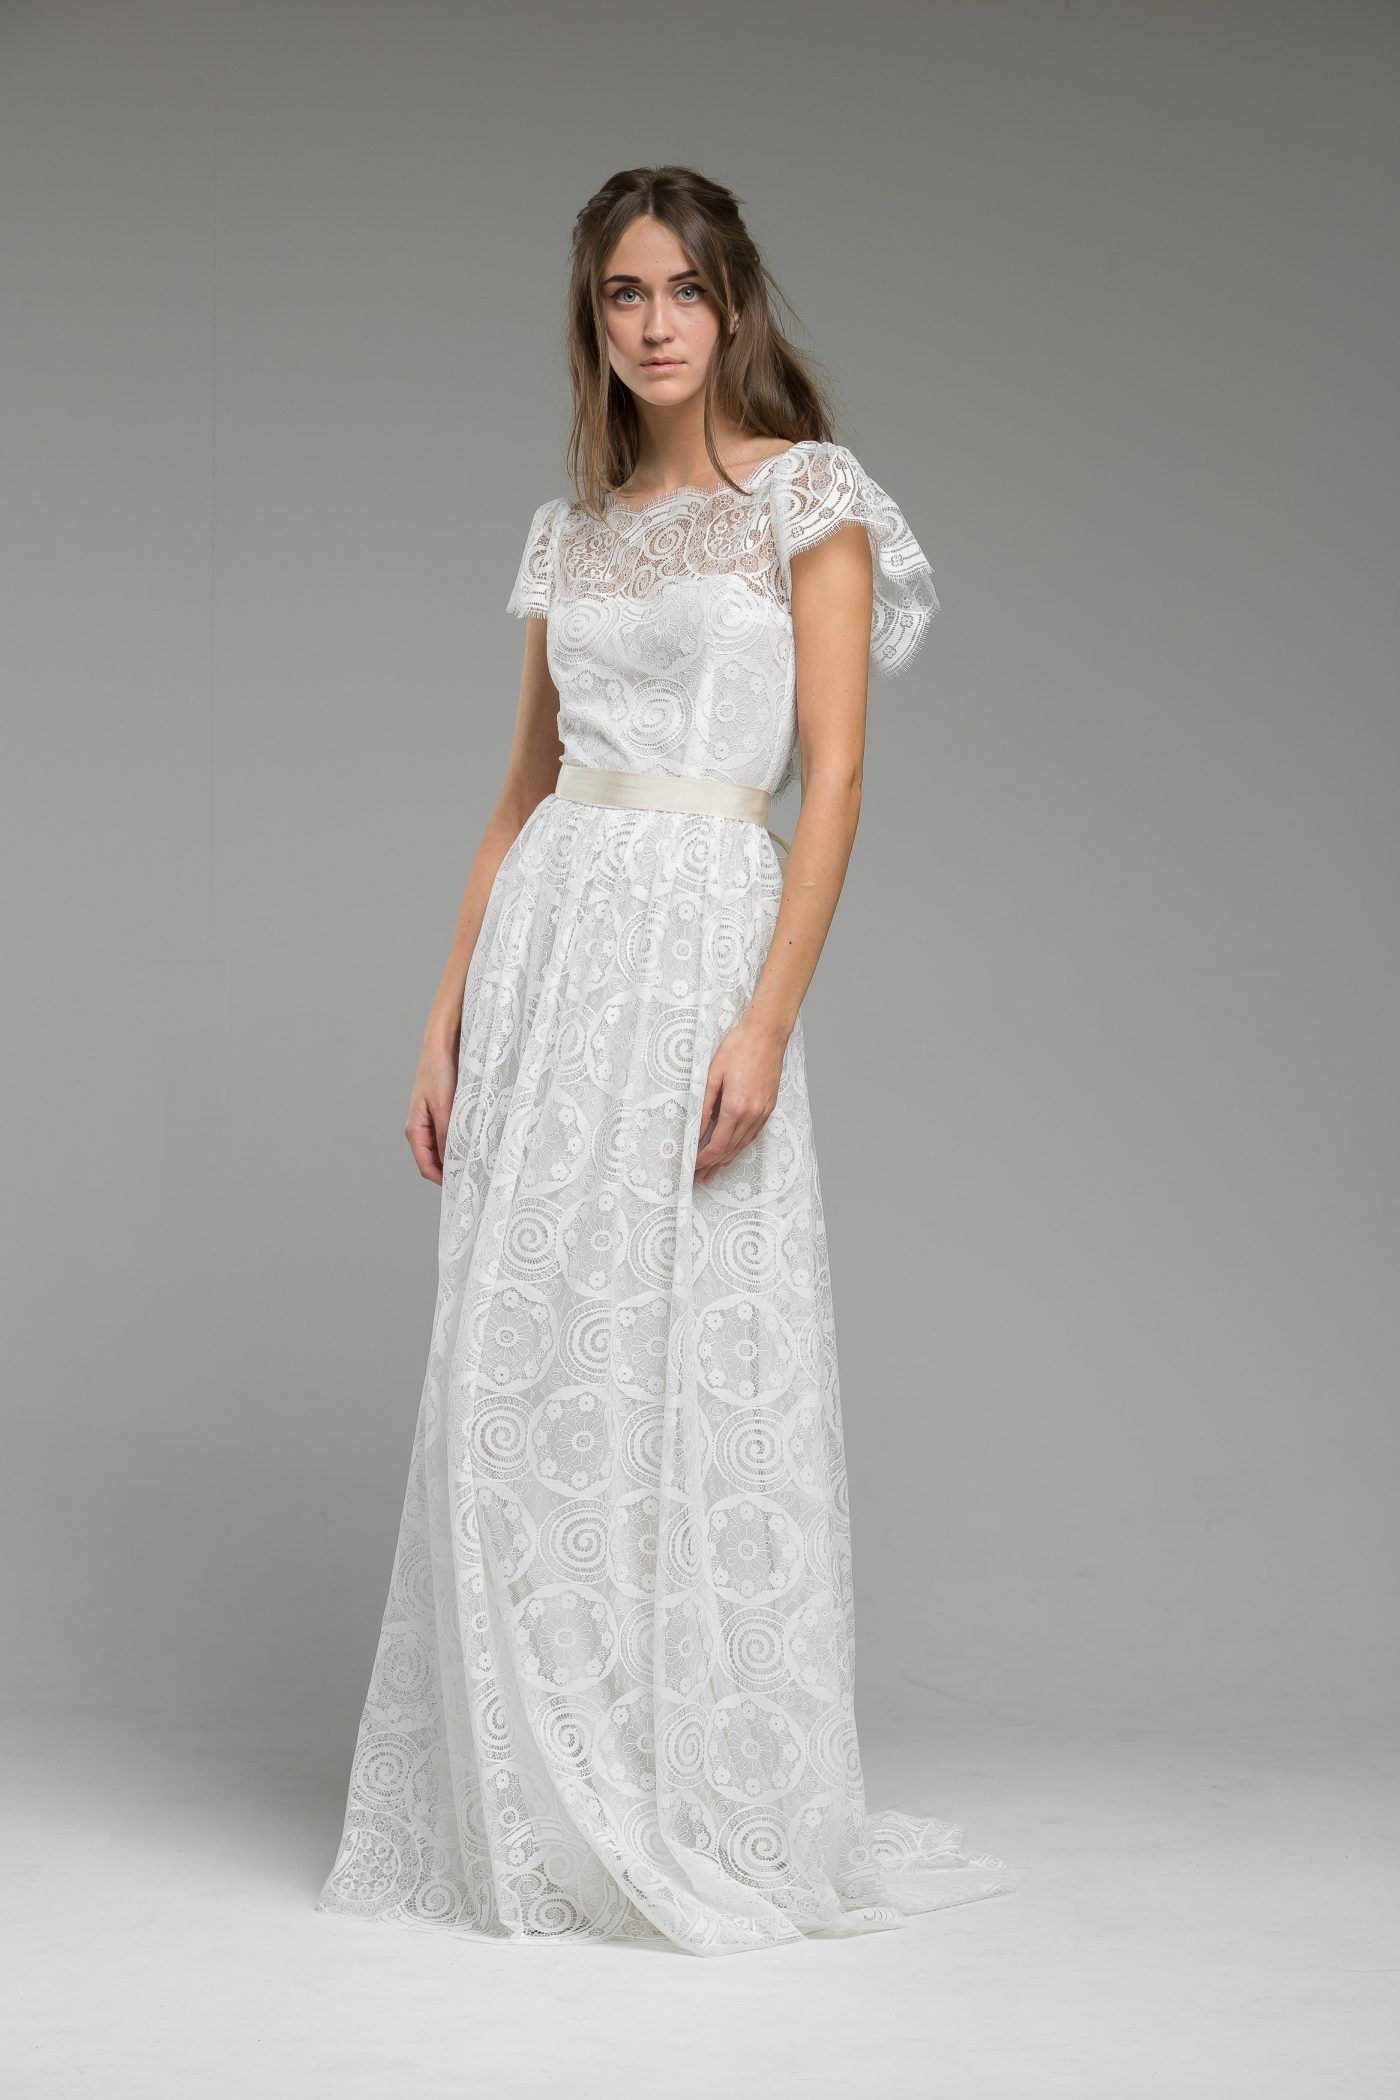 Boho hippie wedding dress  vintageinspiredlaceweddingdressdressesgownlondonUKboho